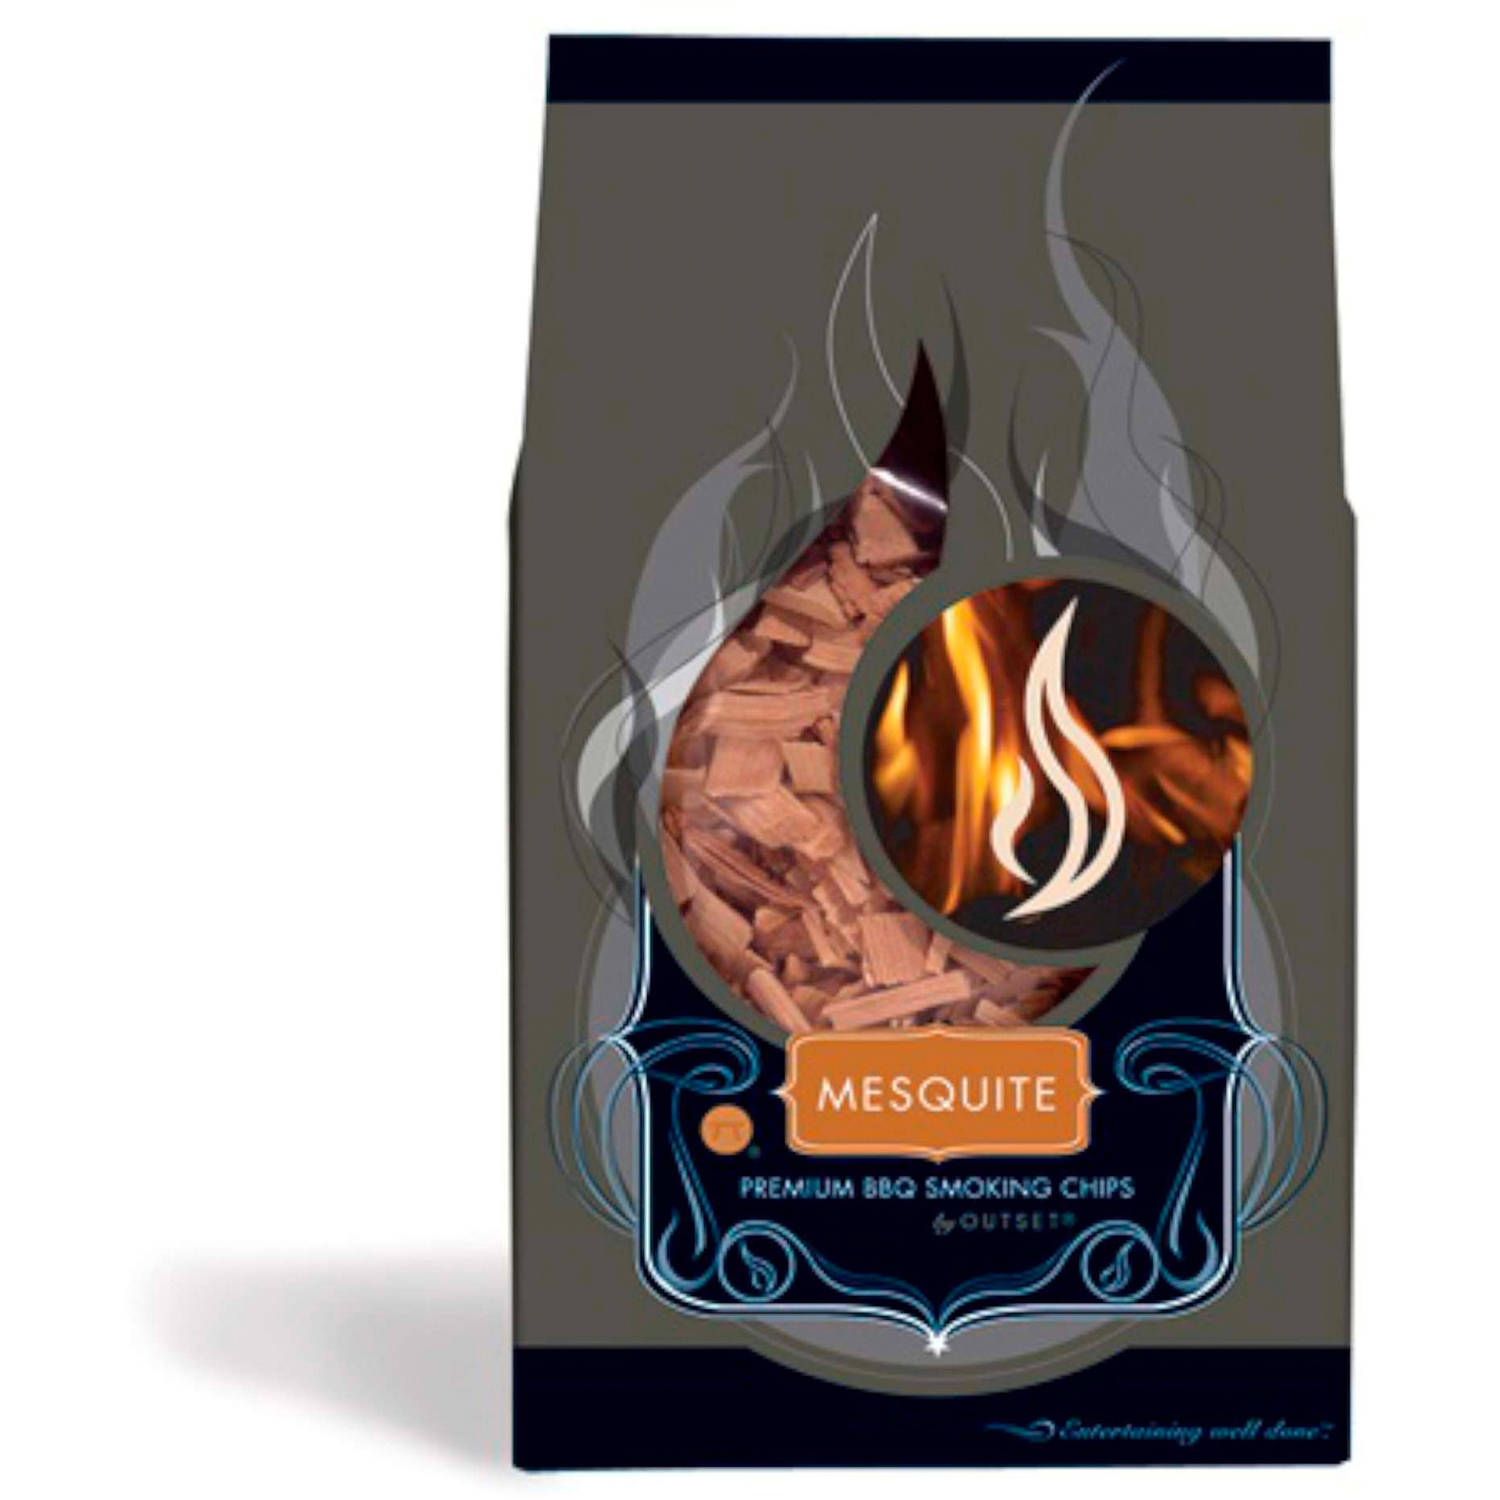 Outset Mesquite Wood Smoking Chips